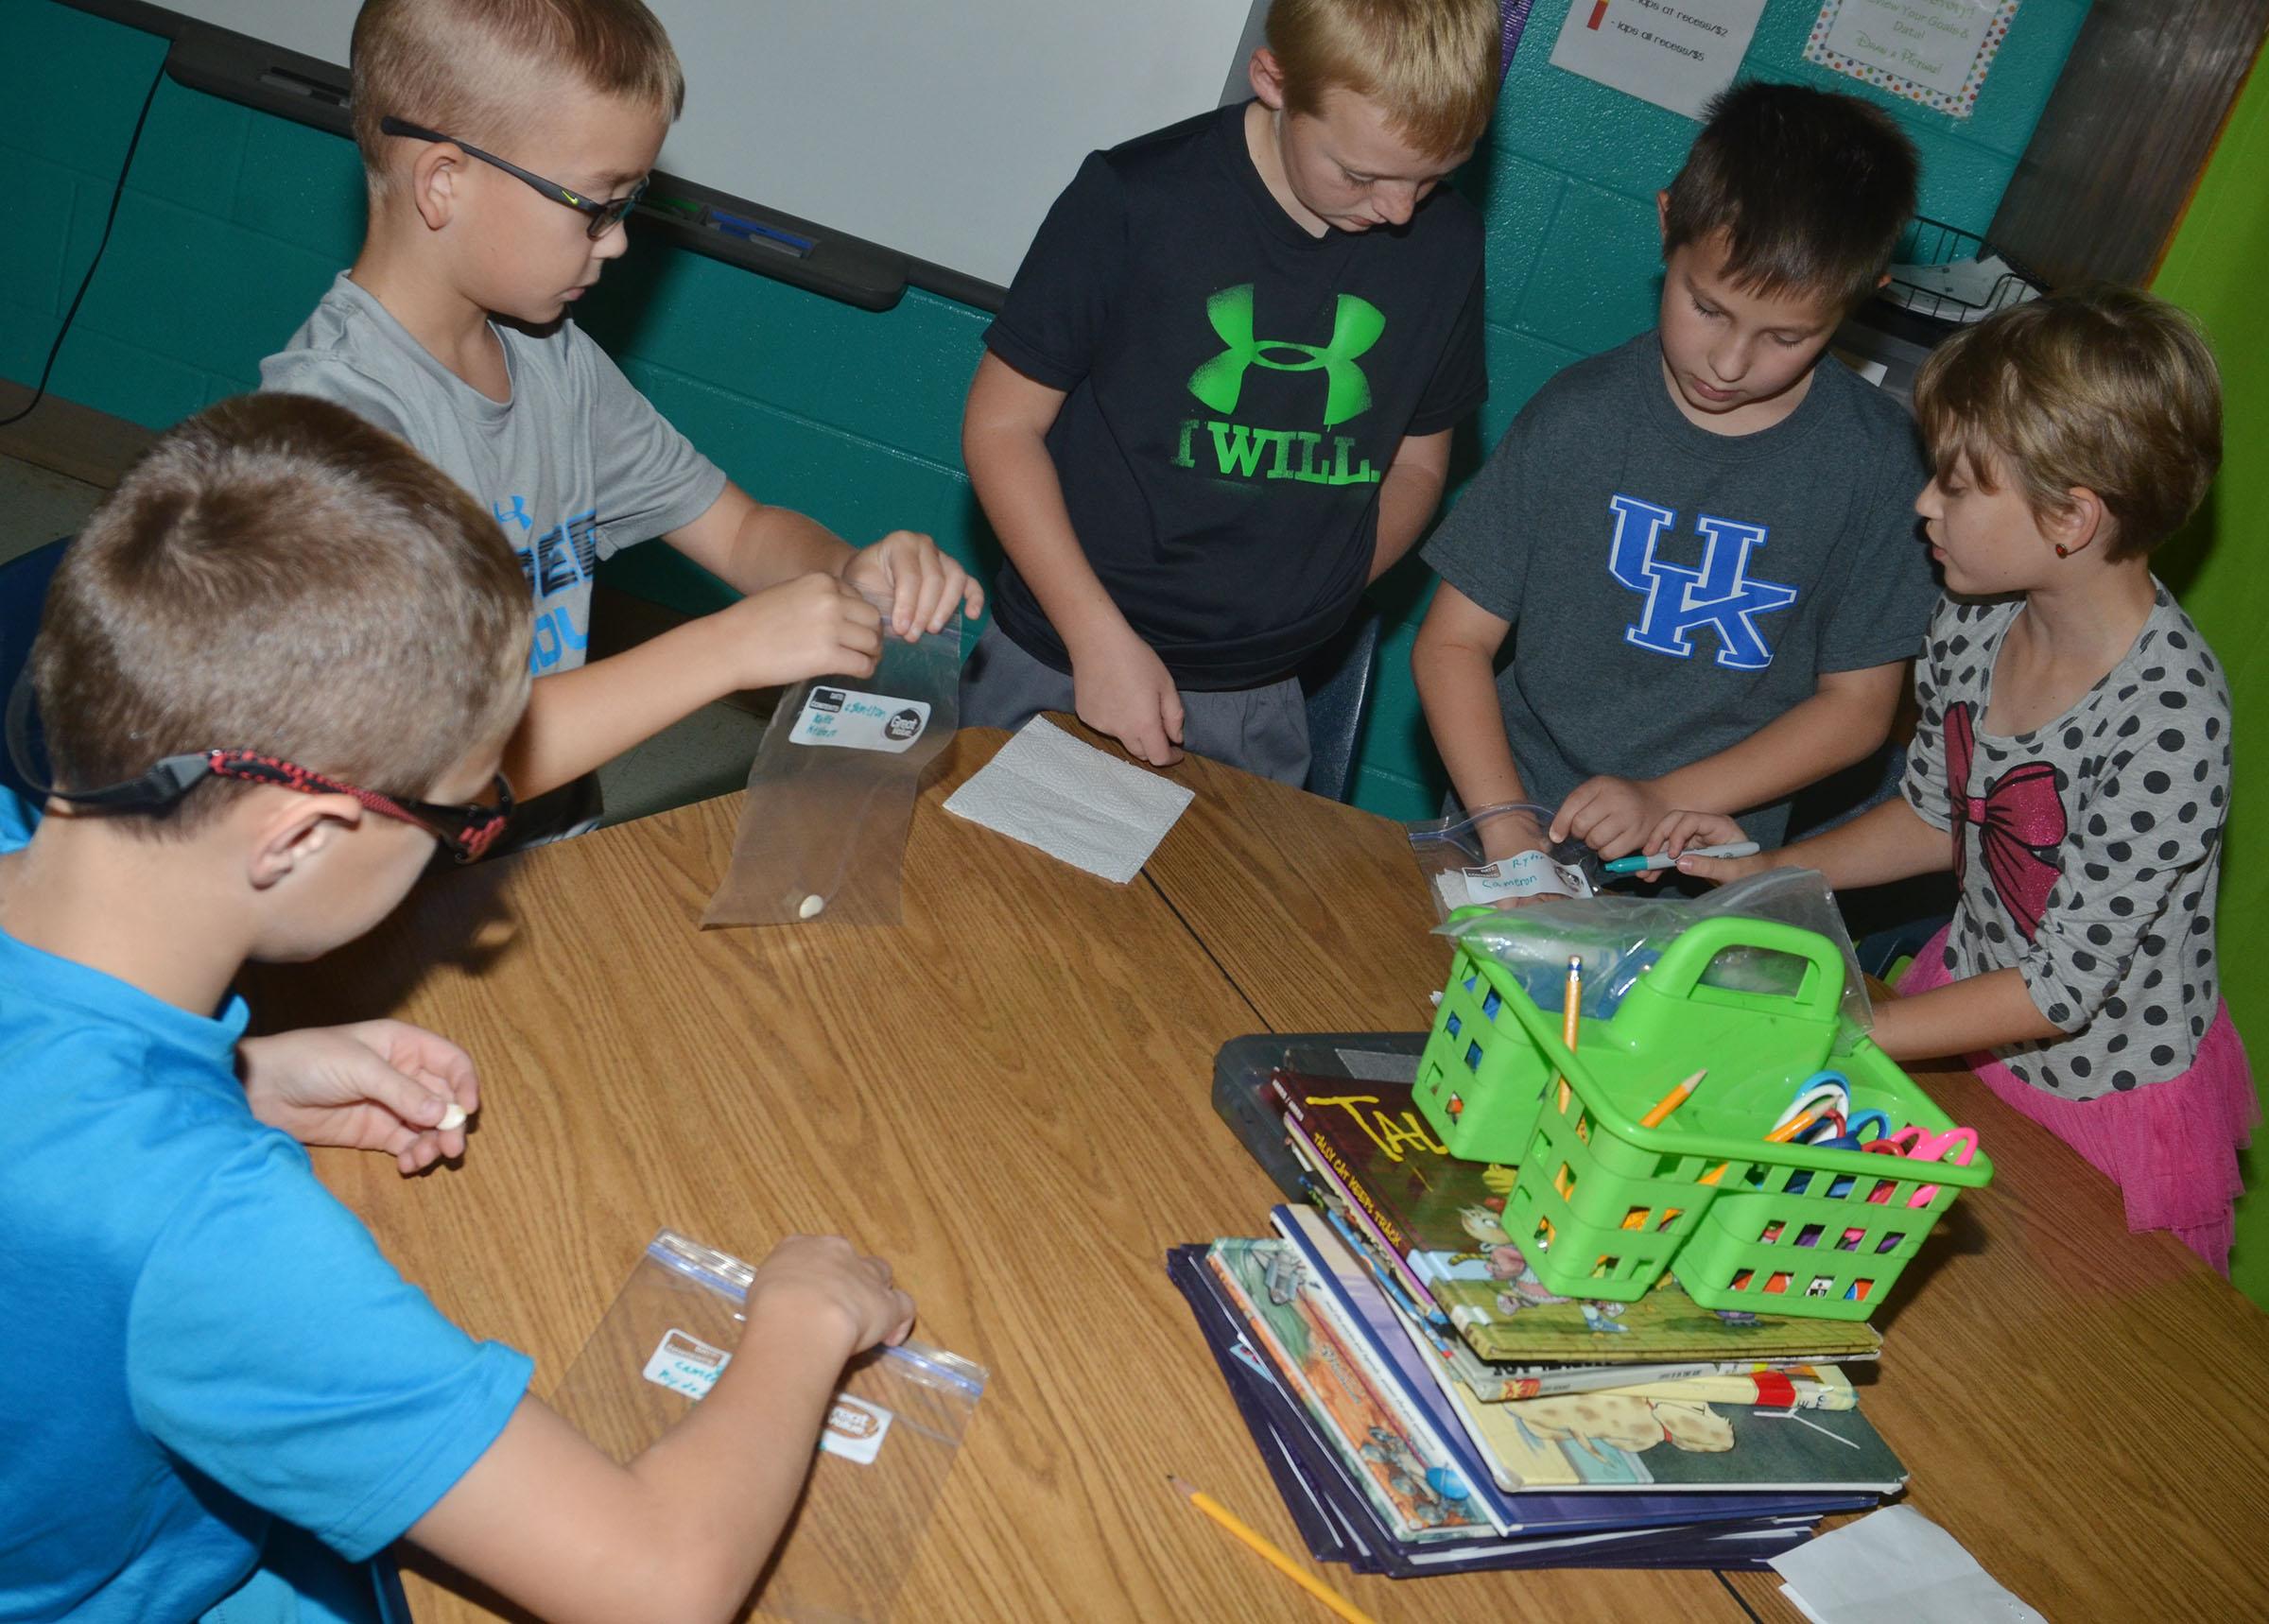 CES third-graders place their seeds in bags so they can determine which elements help them grow the most. From left are Keaton Hord, Cameron Estes, Ryder Murphy, Grayson Dooley and Katie Nunn.